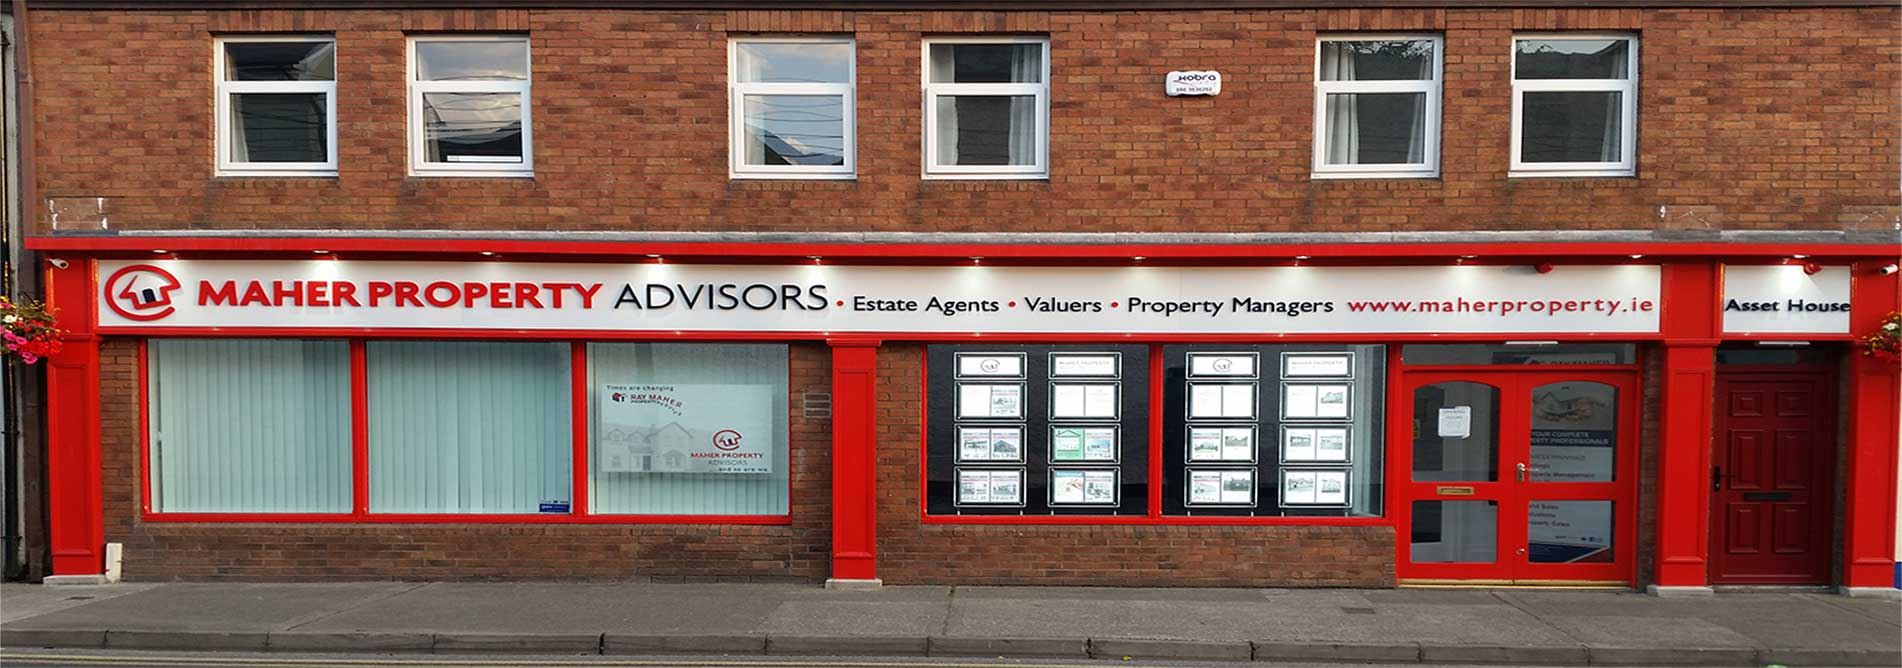 Maher Property Advisors HQ in Carlow